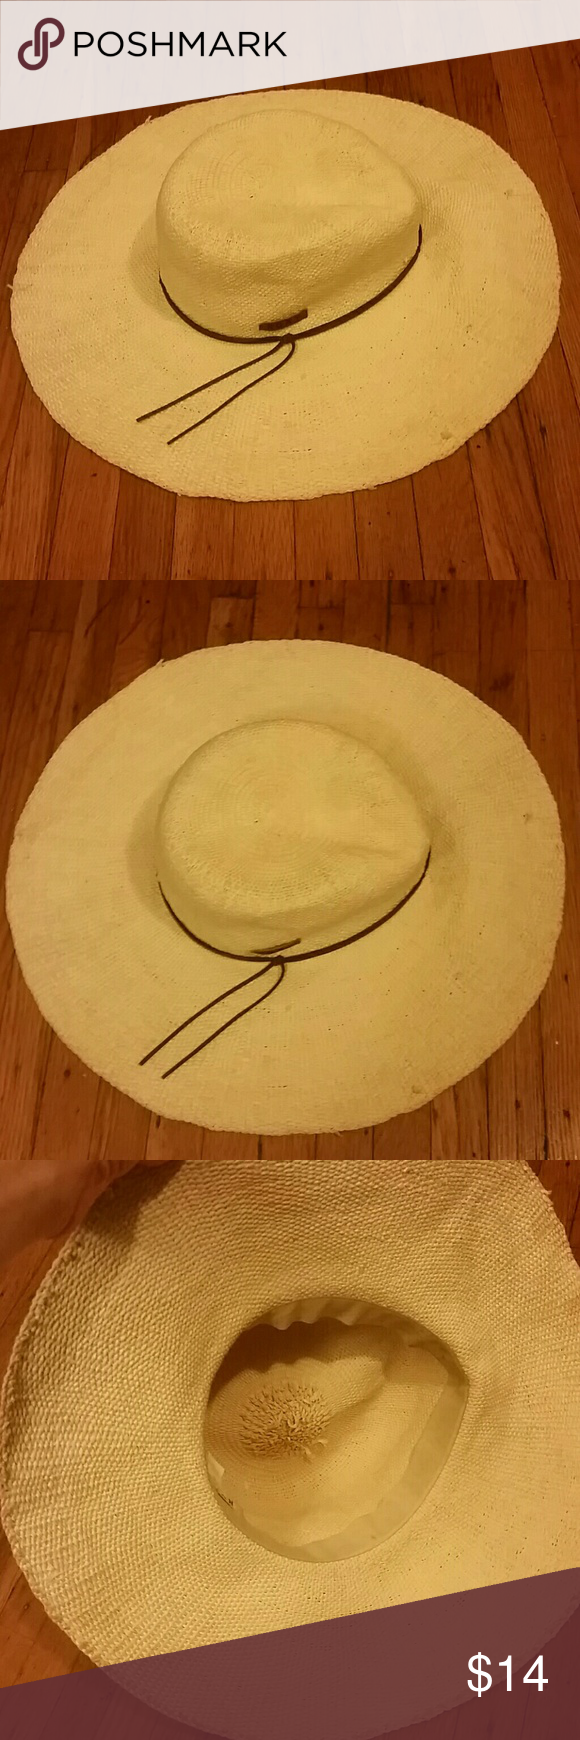 Roxy | straw estilo beach hat 100 % paper straw hat in light beige with roxy brand on side. One size fits all. Worn a few times, still excellent condition! Roxy Accessories Hats